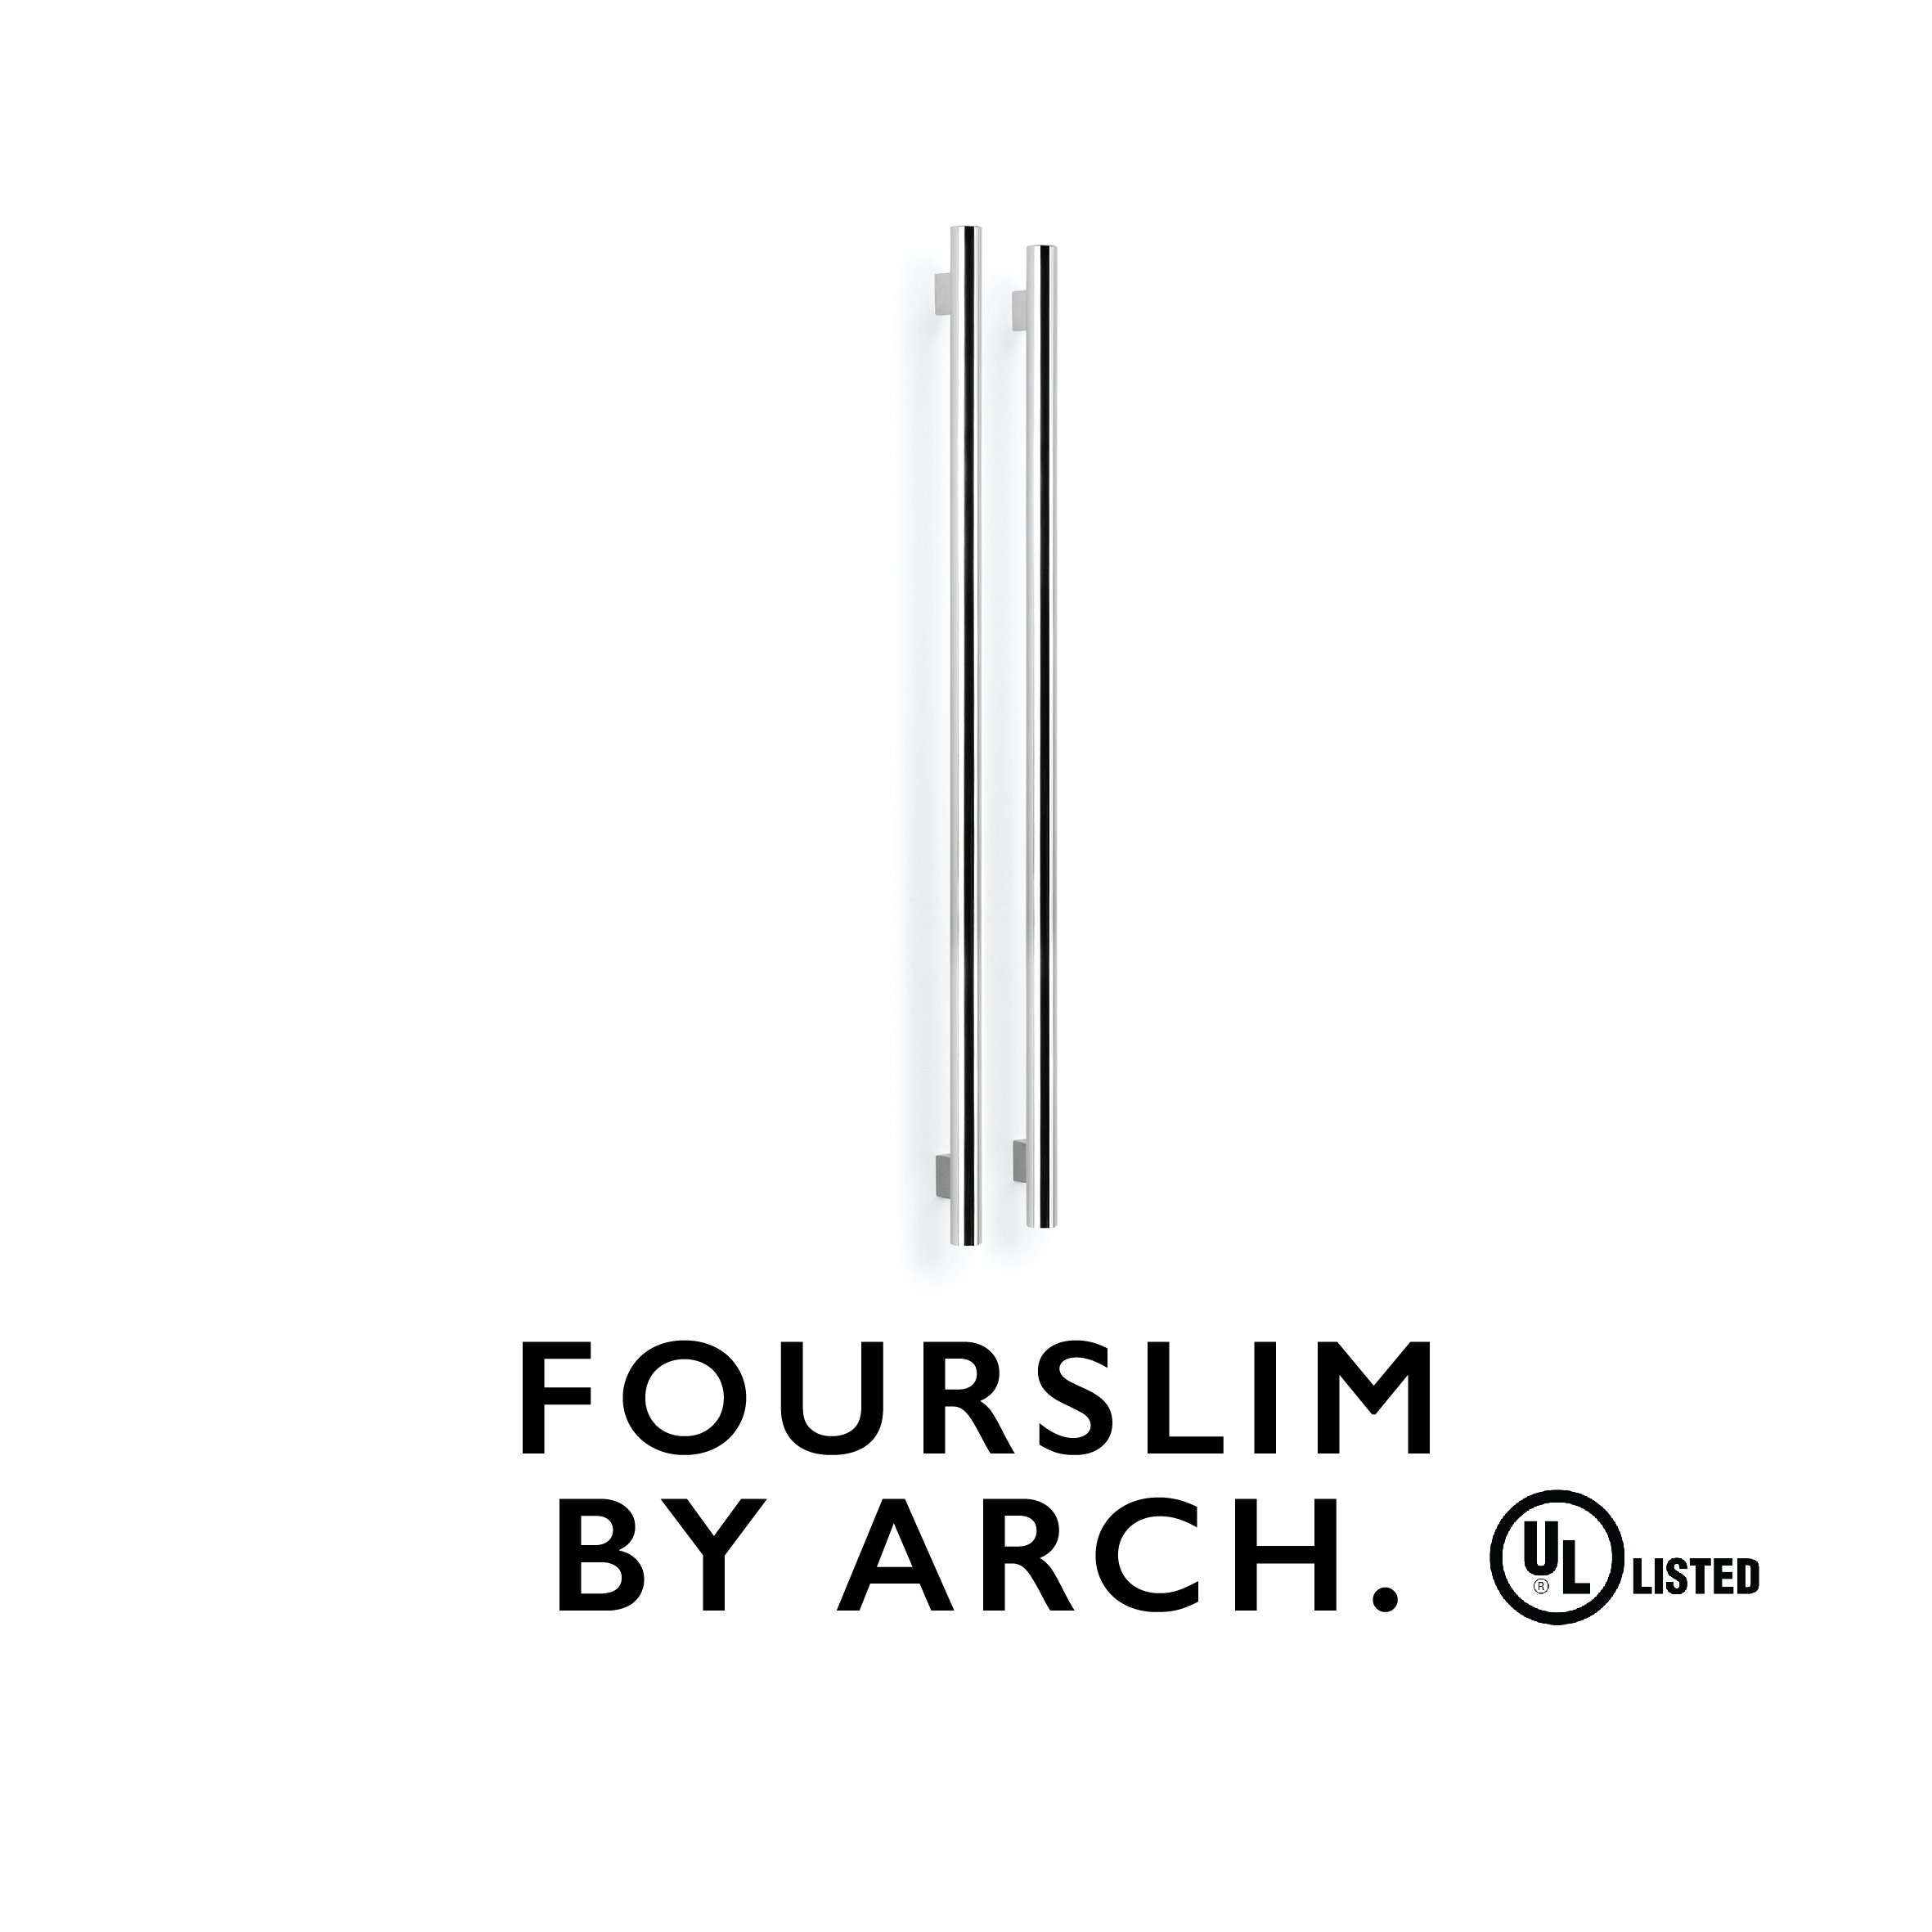 FOURSLIM BY ARCH – INSTRUCTION MANUAL